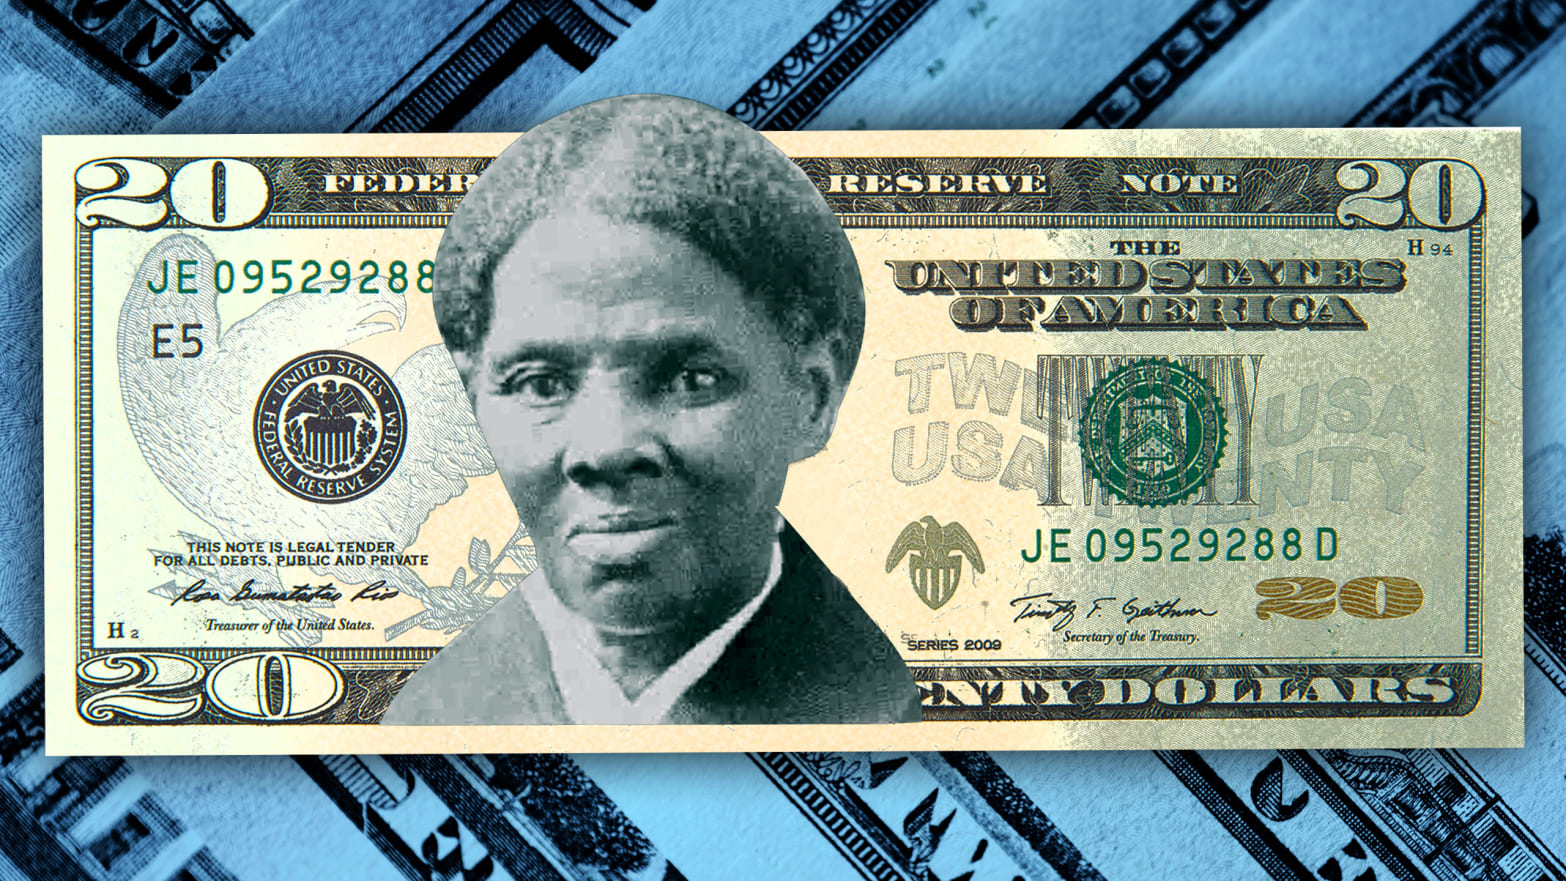 New 100 Dollar Bill 2020 What Happened to the Plan to Put Harriet Tubman on the $20 Bill?